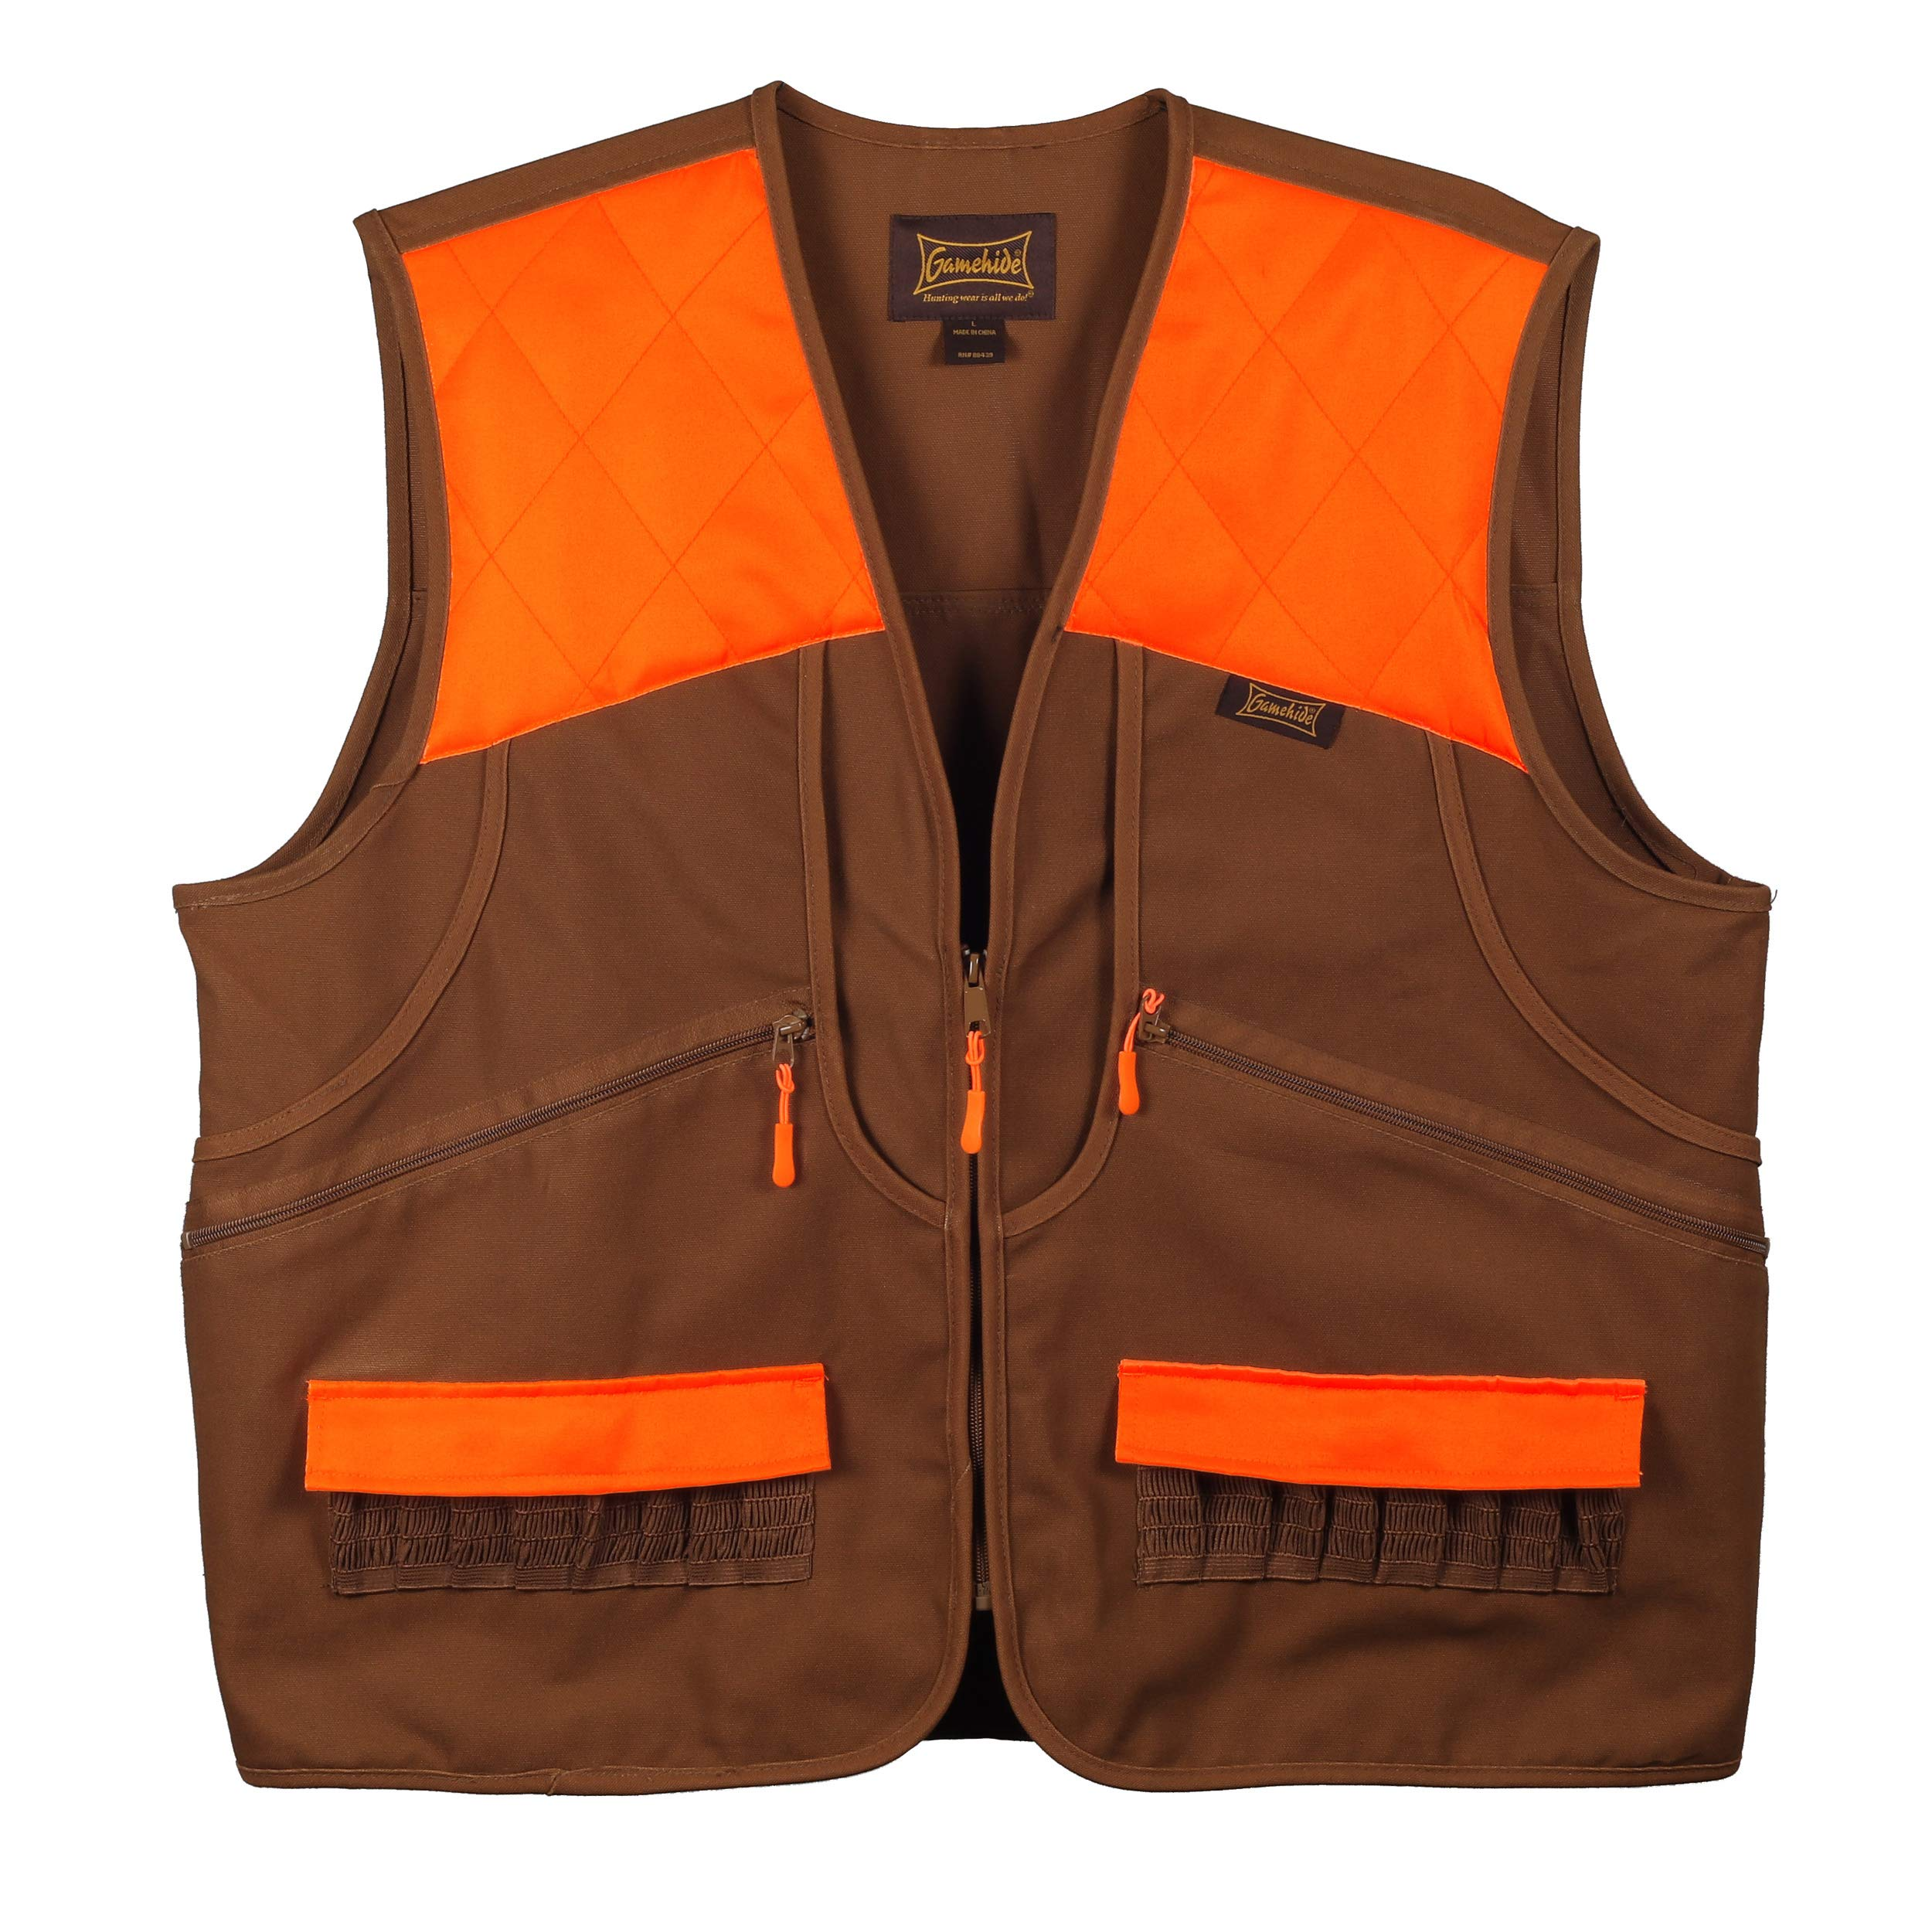 Gamehide Switchgrass Upland Field Bird Vest (Marsh Brown/Orange, 3X-Large) by Gamehide